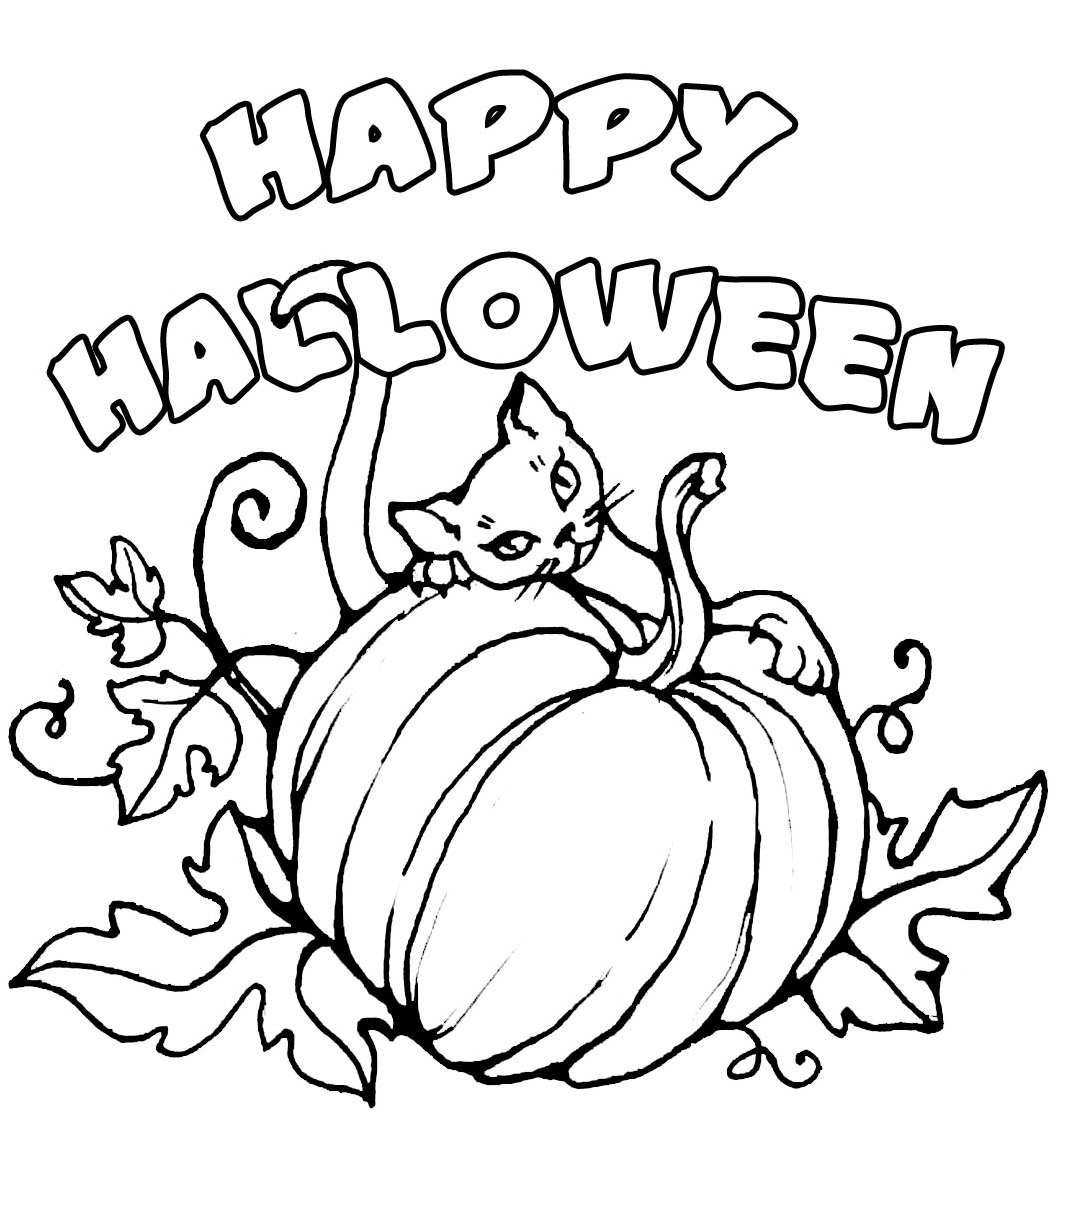 halloween black coloring pages - photo#18